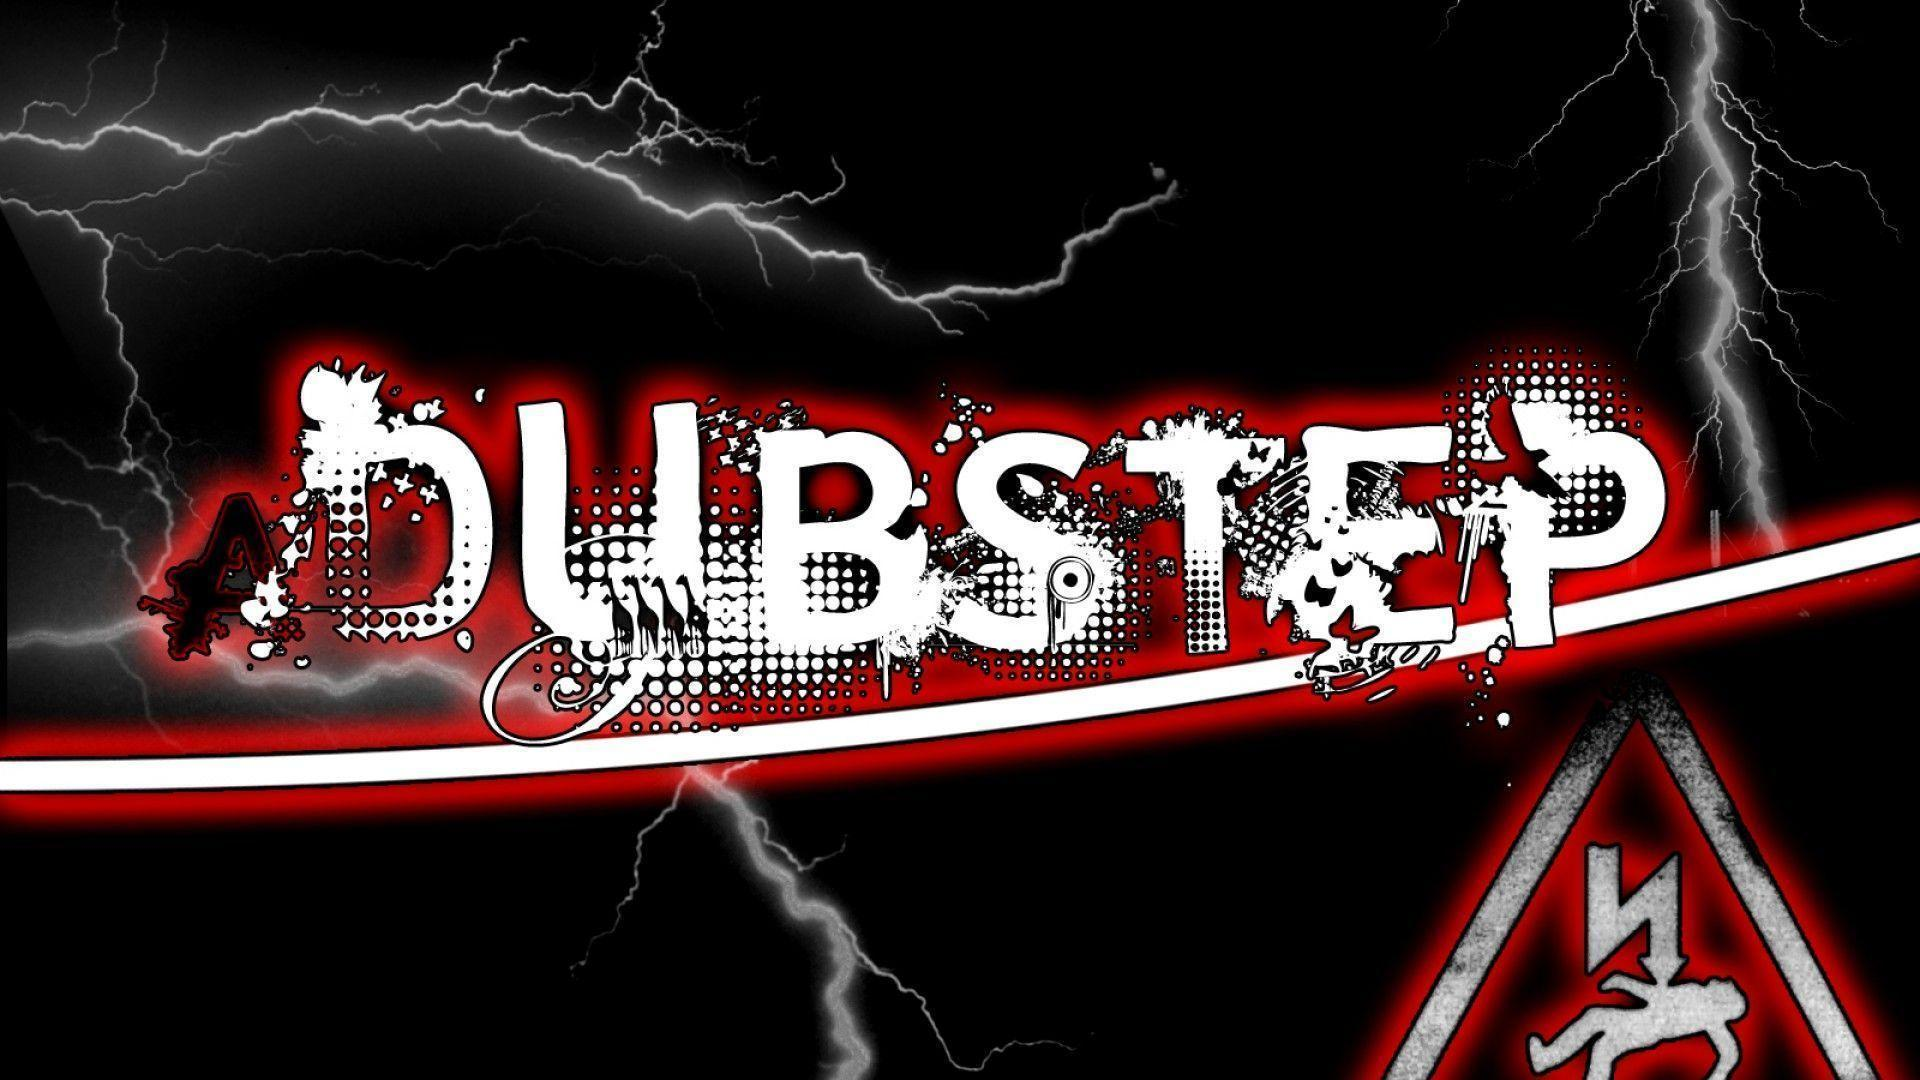 Hd Music Wallpapers For Android Group 62: Dubstep Wallpapers HD